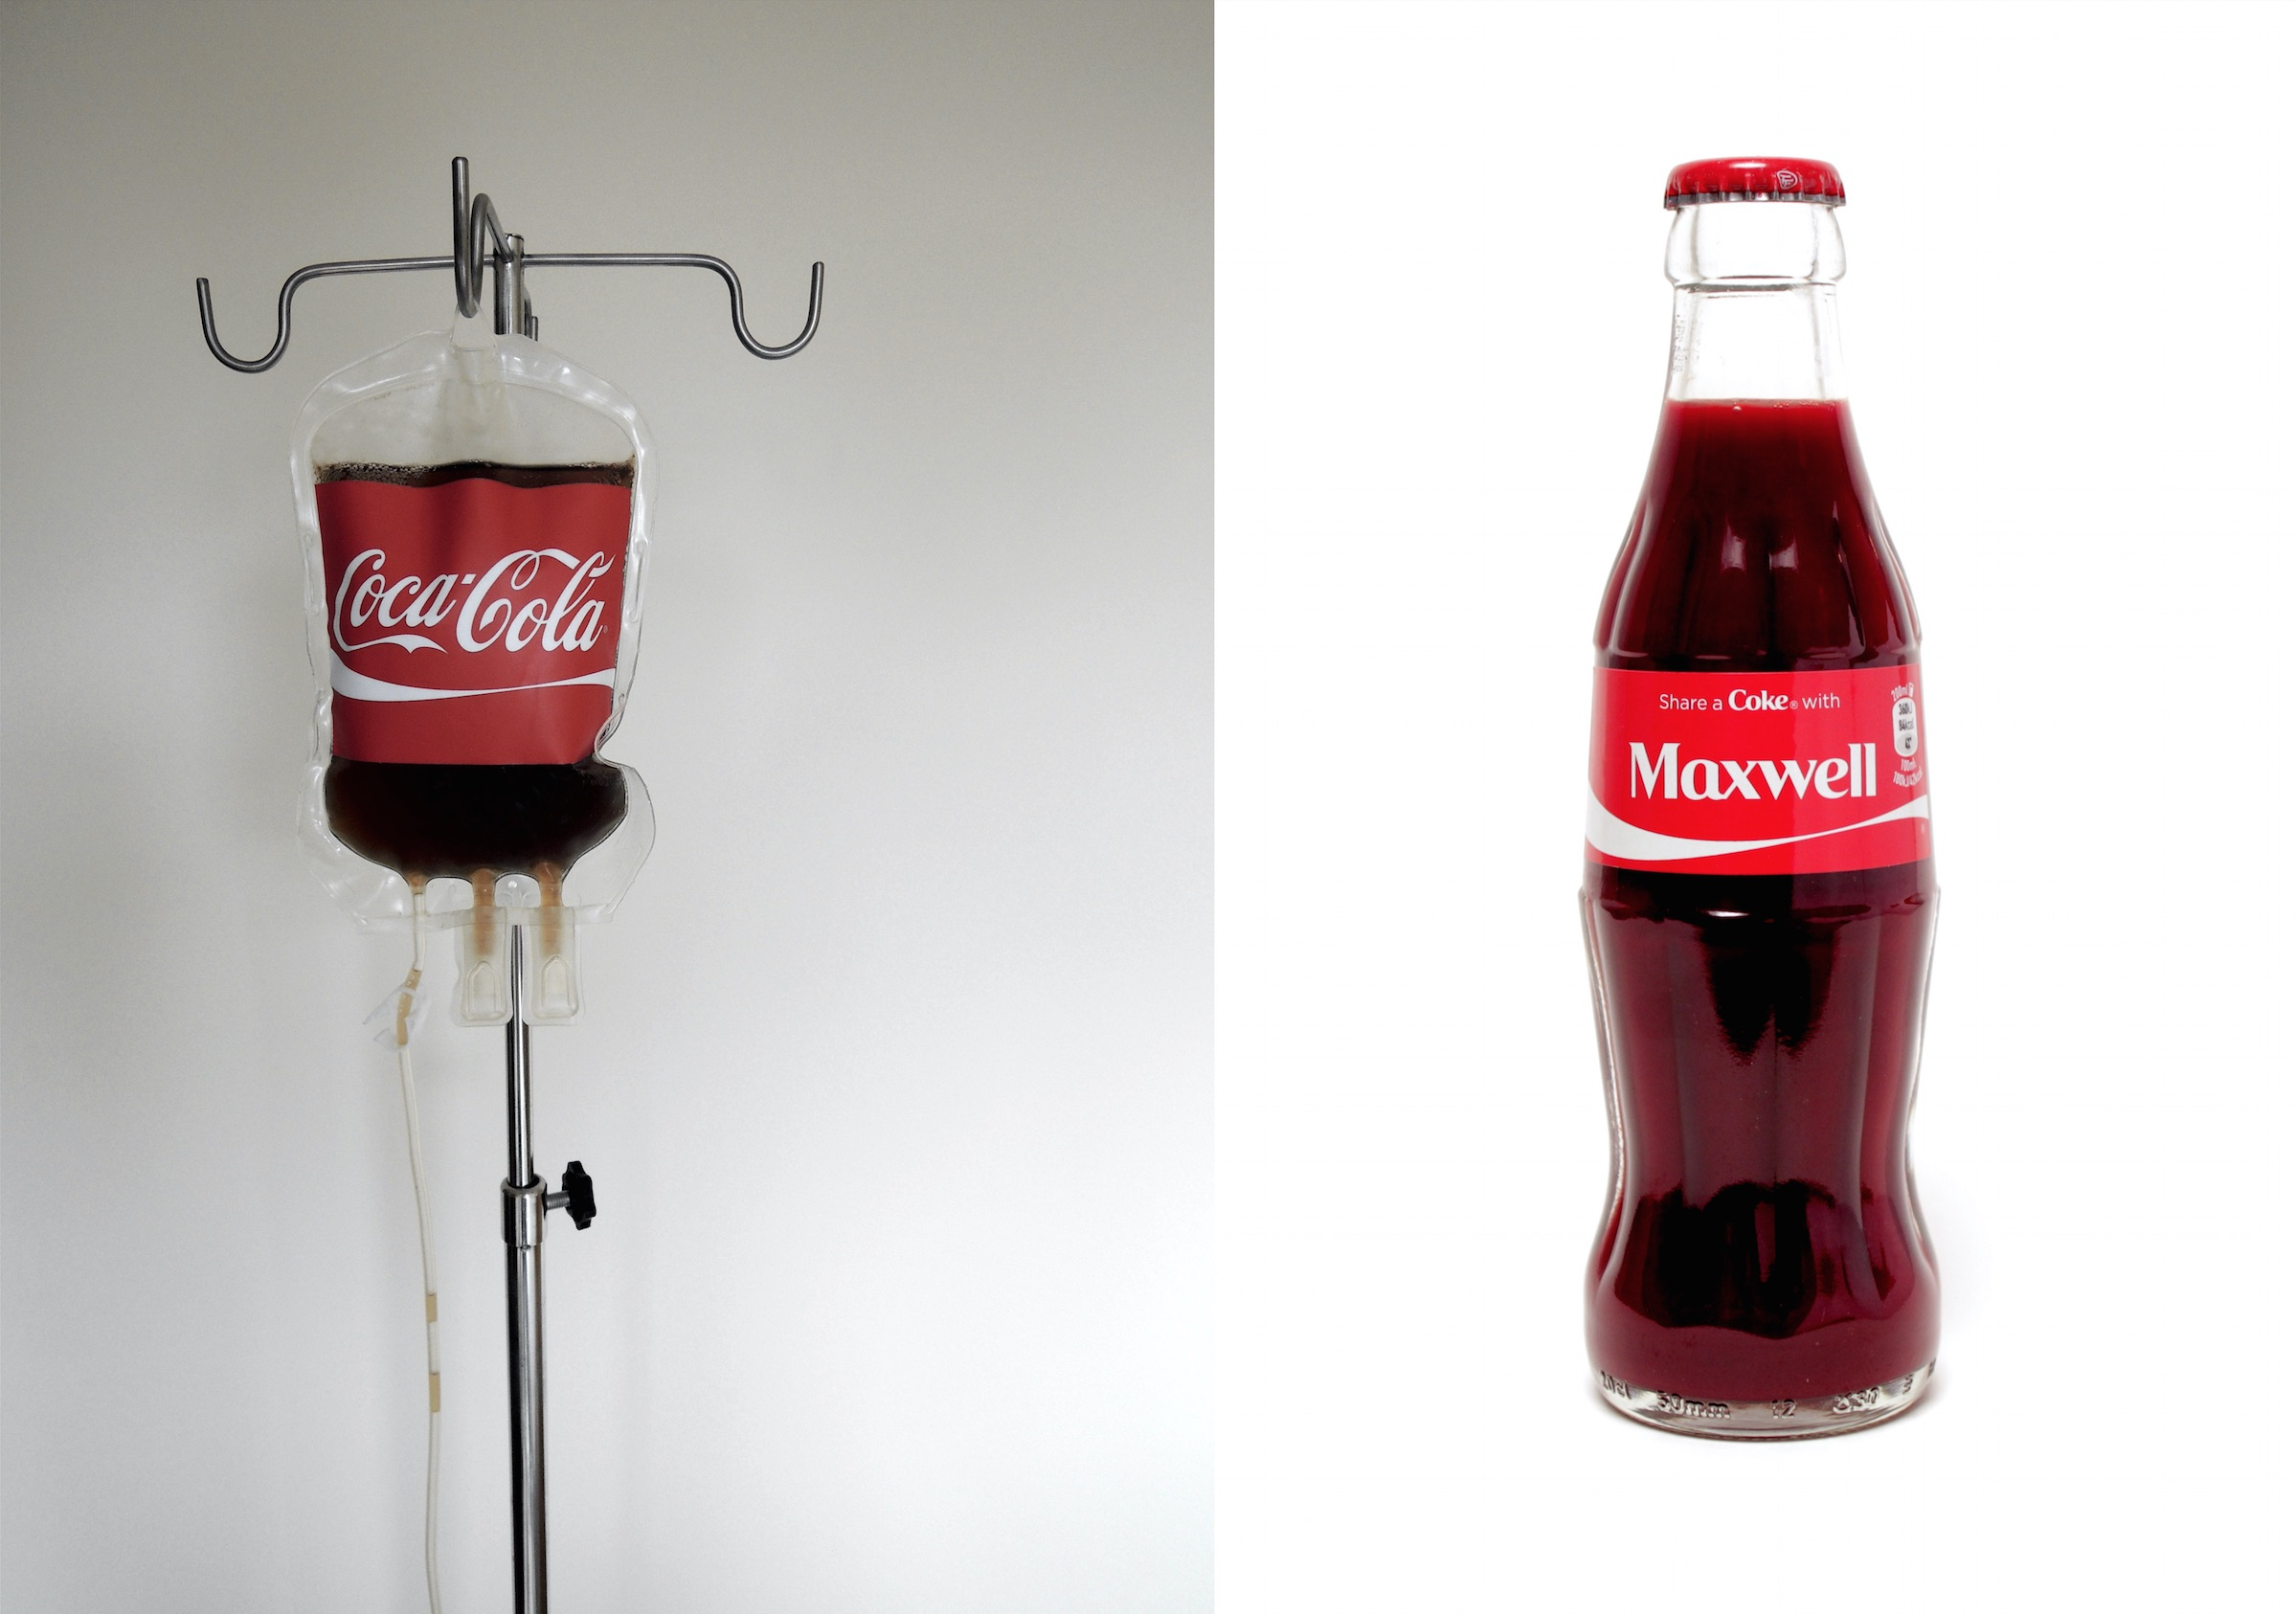 IV & Share A Coke